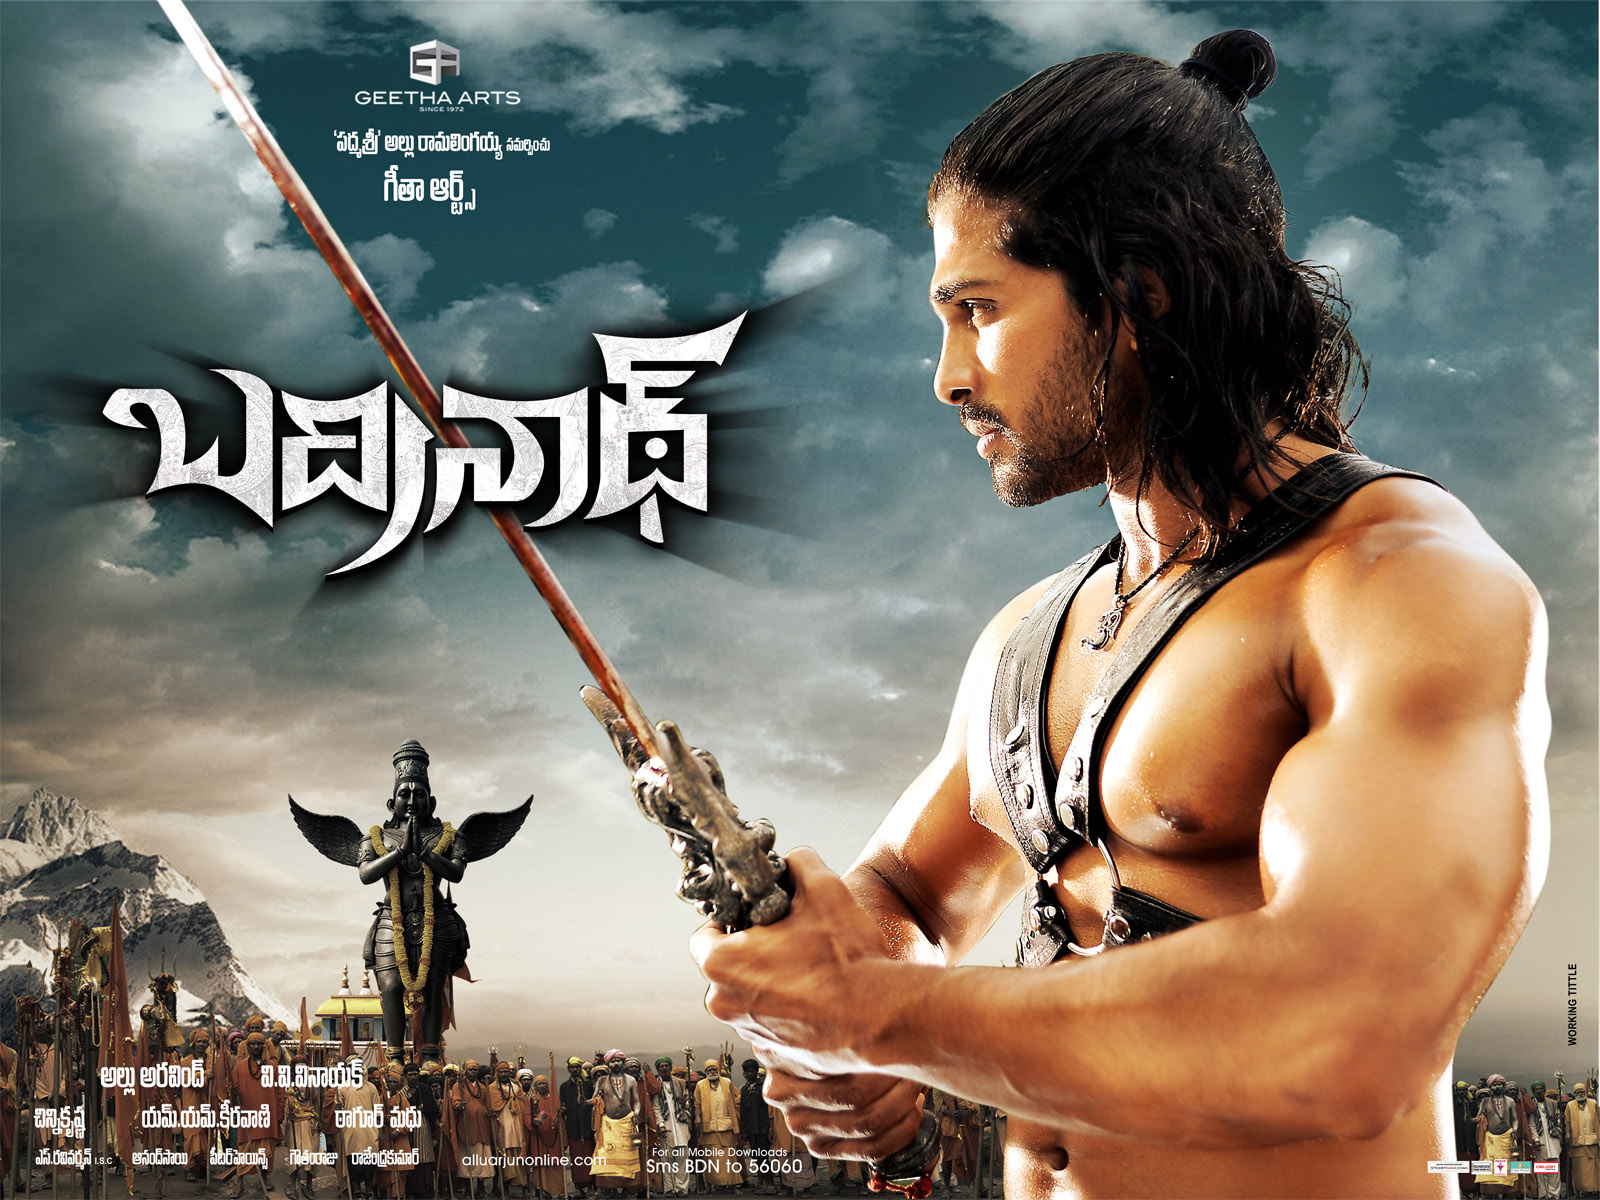 Shiva Trilogy Wallpapers Hd Rocking Hd Posters Of Badrinath With Out Water Marks